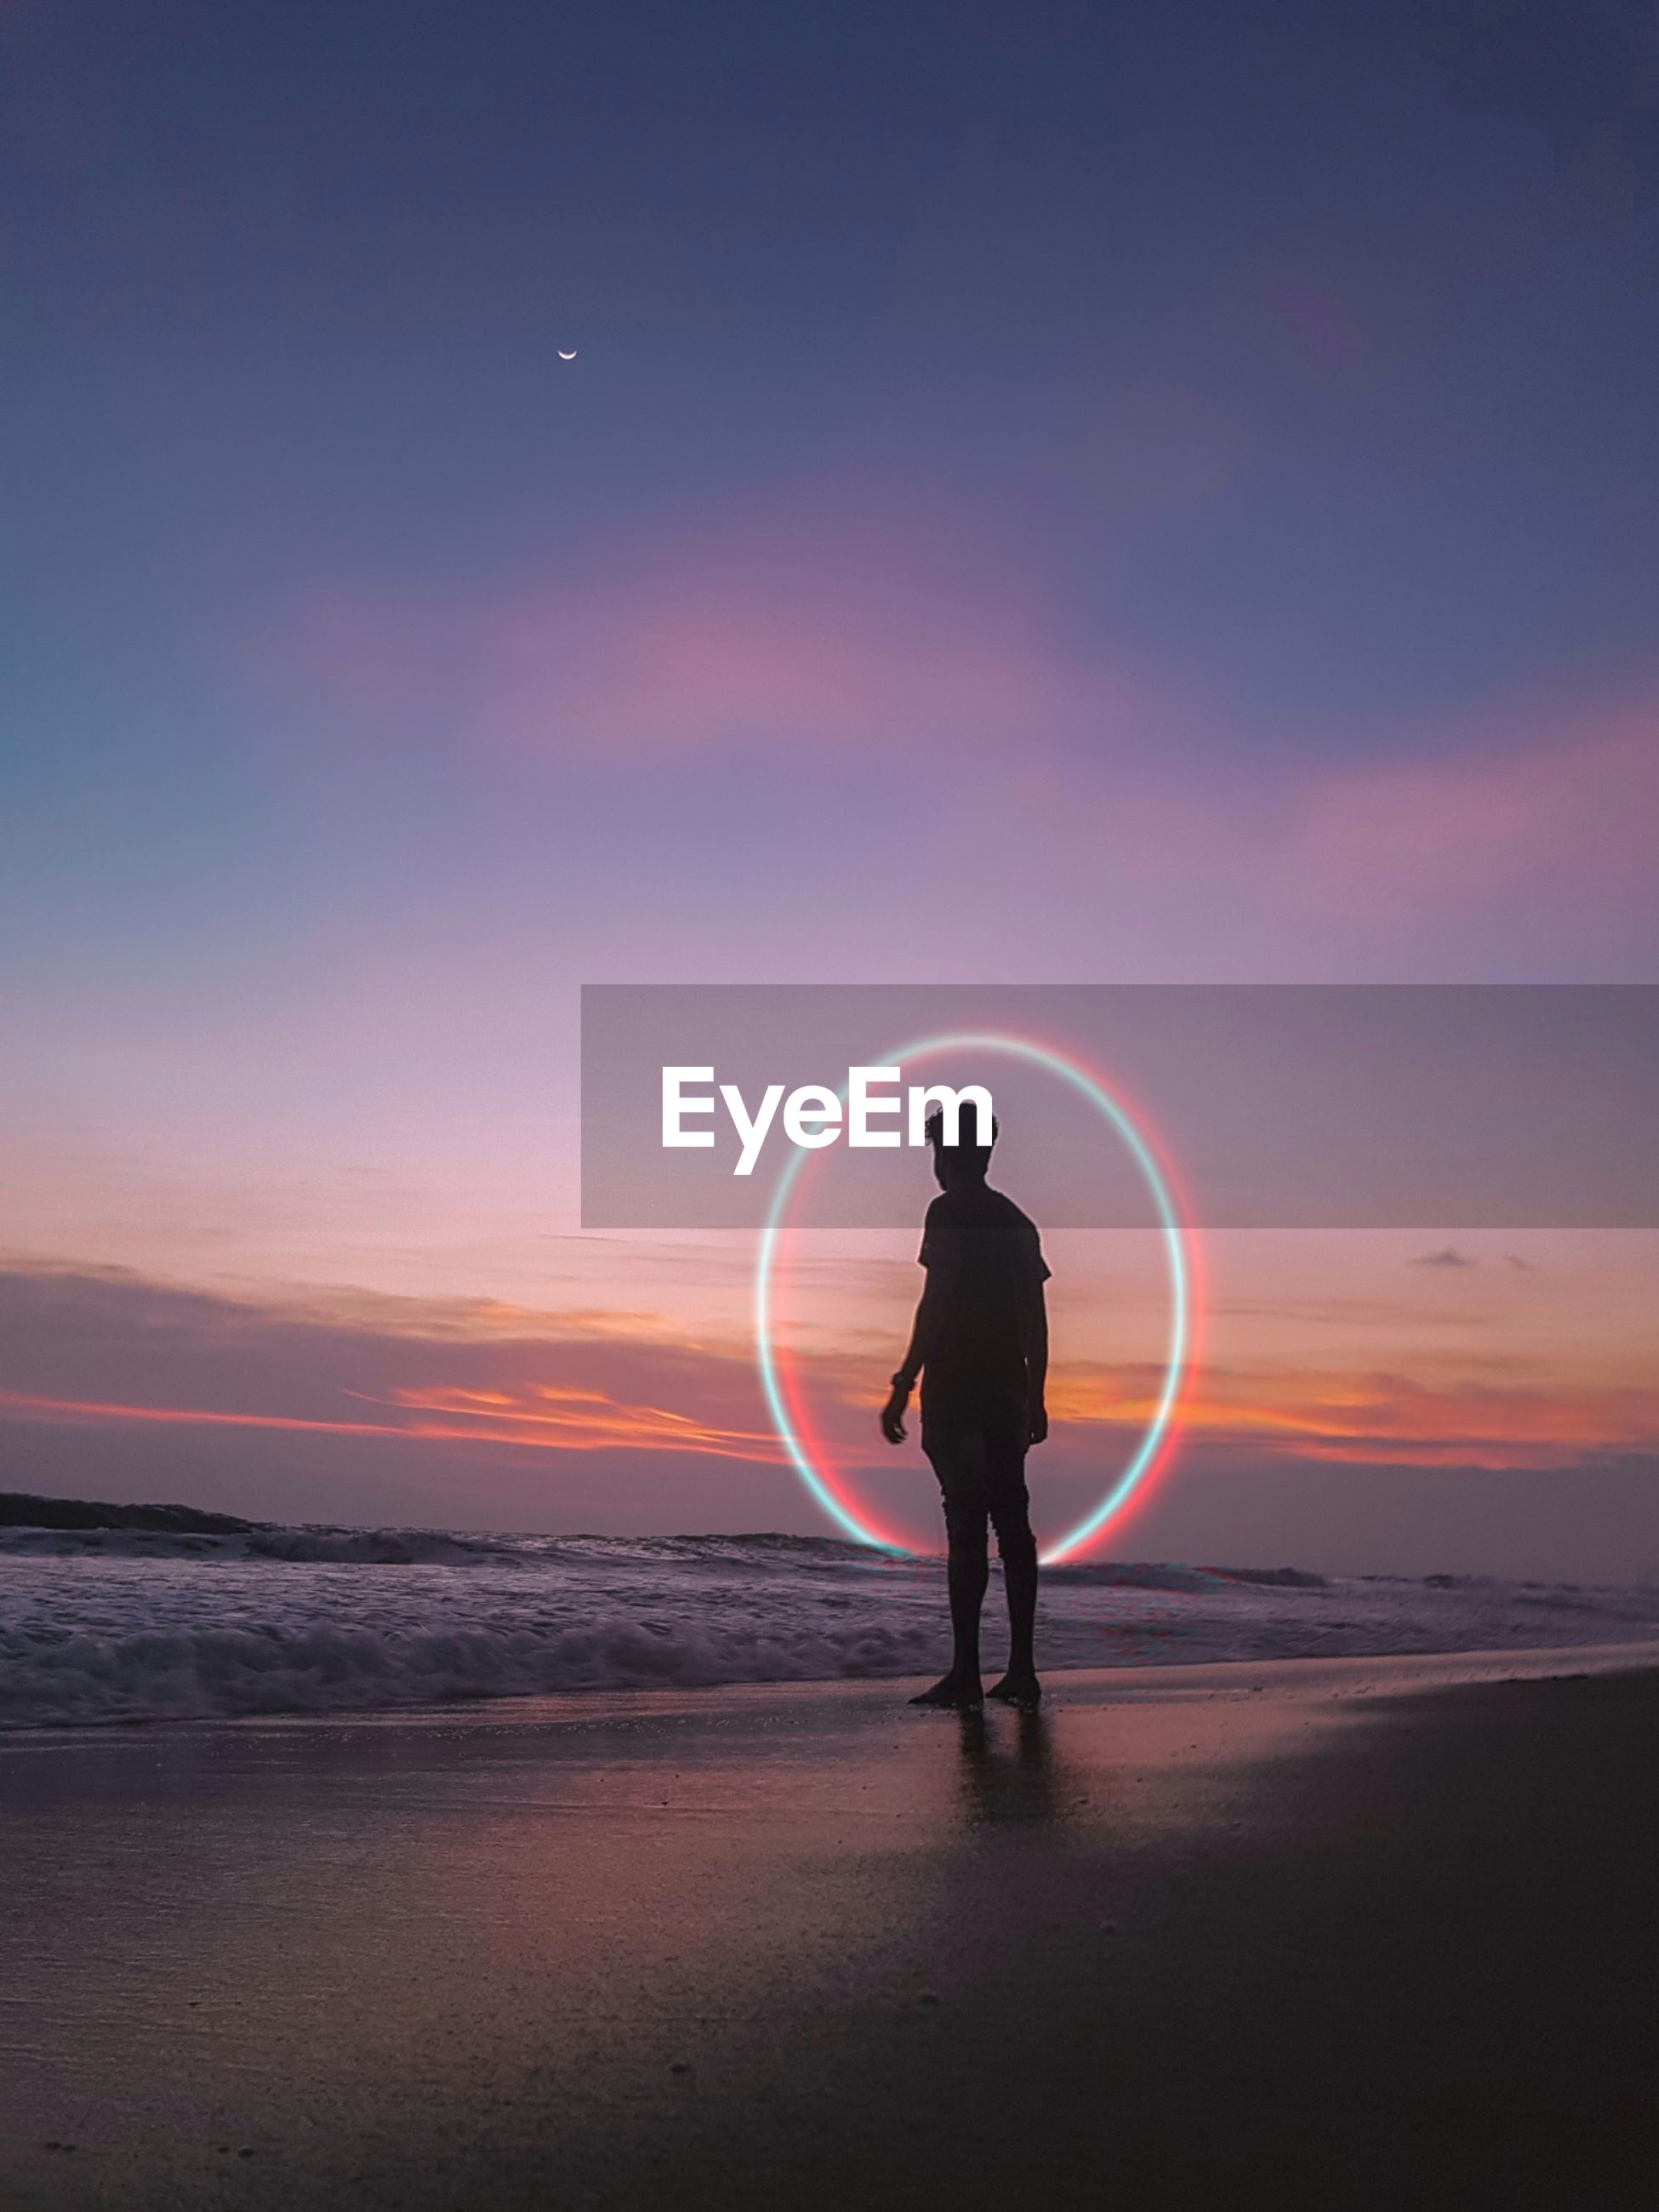 Digital composite image of man standing against circle on beach during sunset